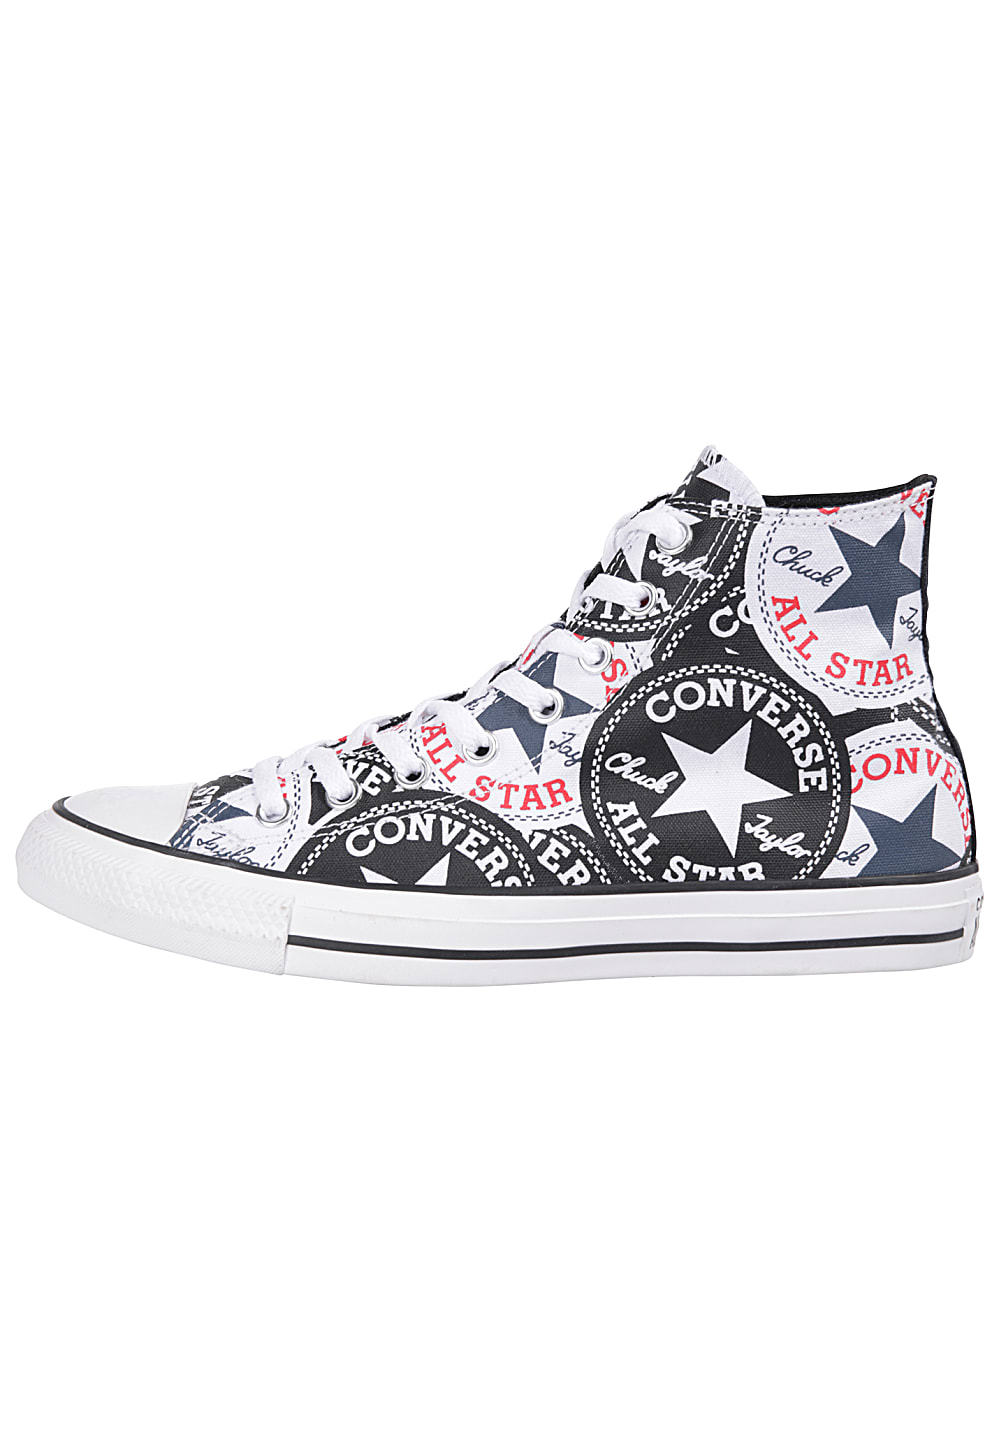 Converse Chuck Taylor All Star Hi Sneaker Camouflage